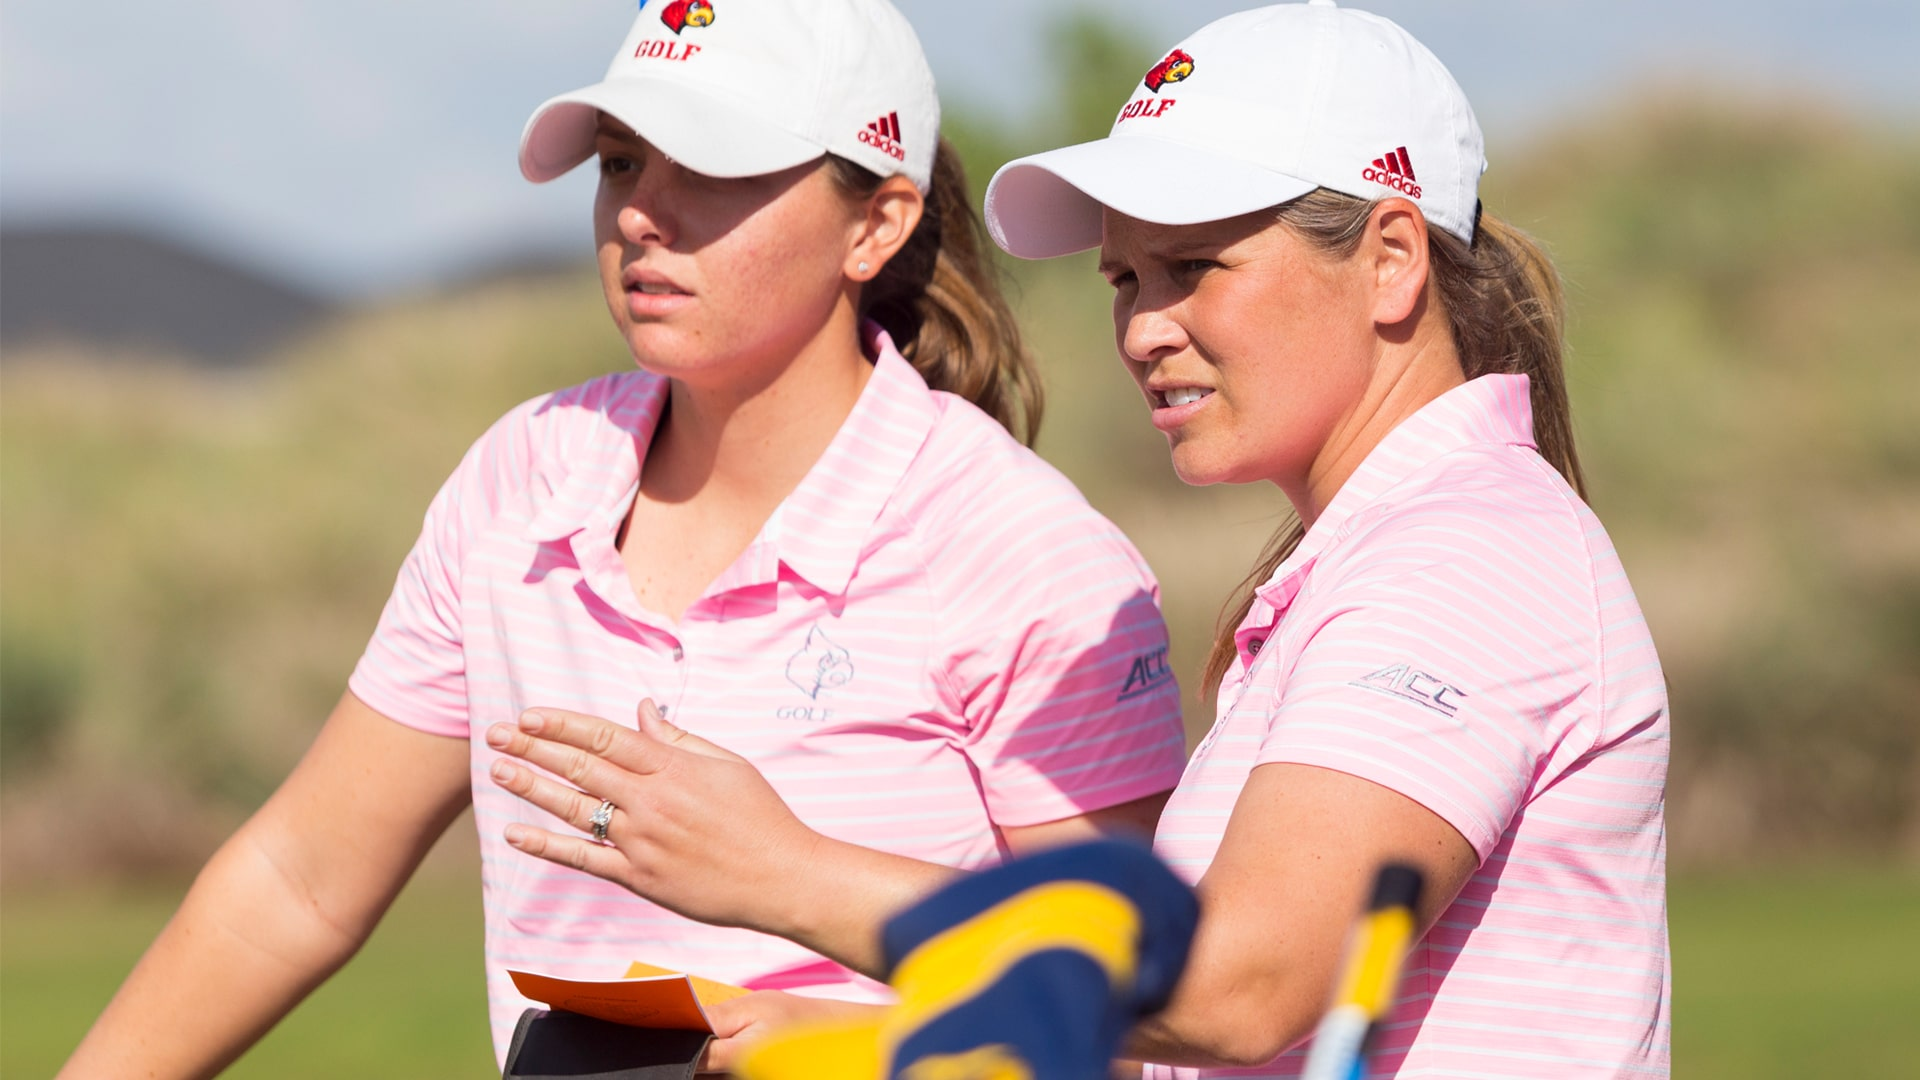 Whitney Young to become womens golf head coach in 2019  The Louisville Cardinal